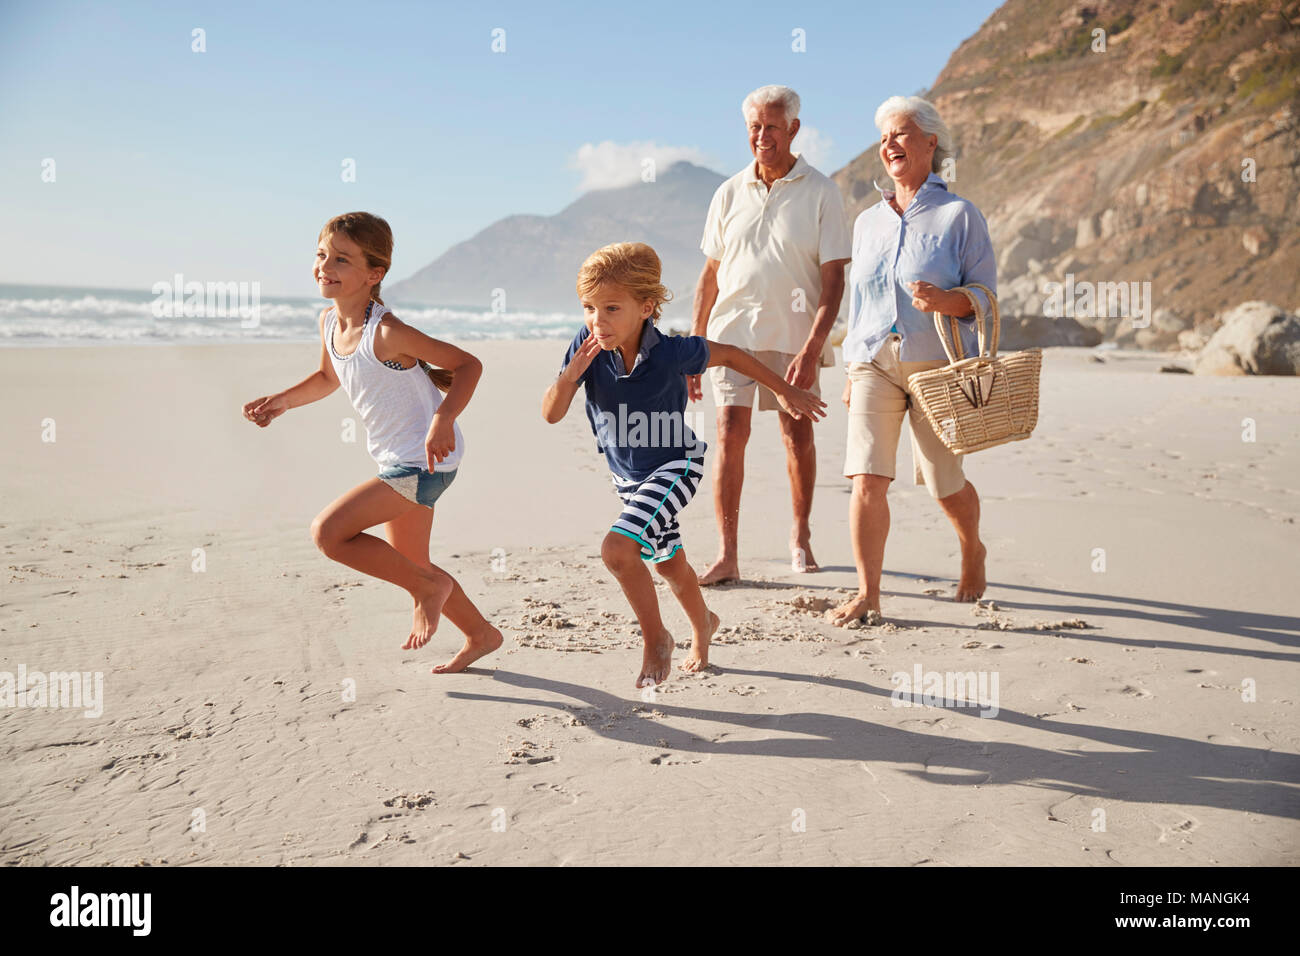 Grandparents Running Along Beach With Grandchildren - Stock Image